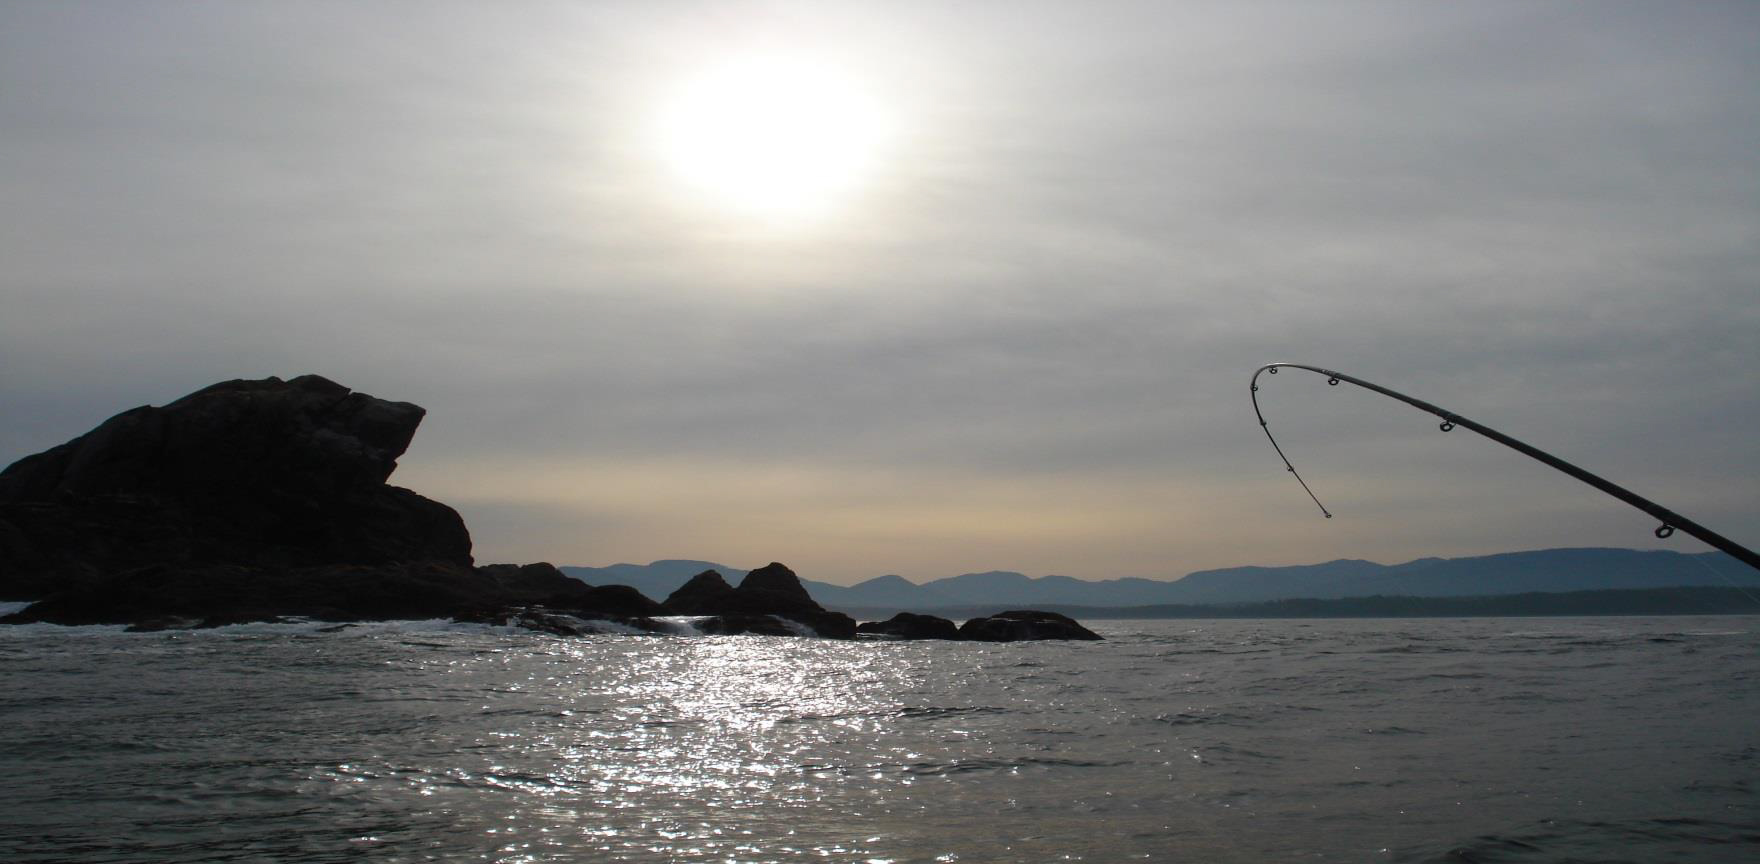 World Class Salmon, Halibut, and Cod fishing within Barkley Sound, right at your doorstep